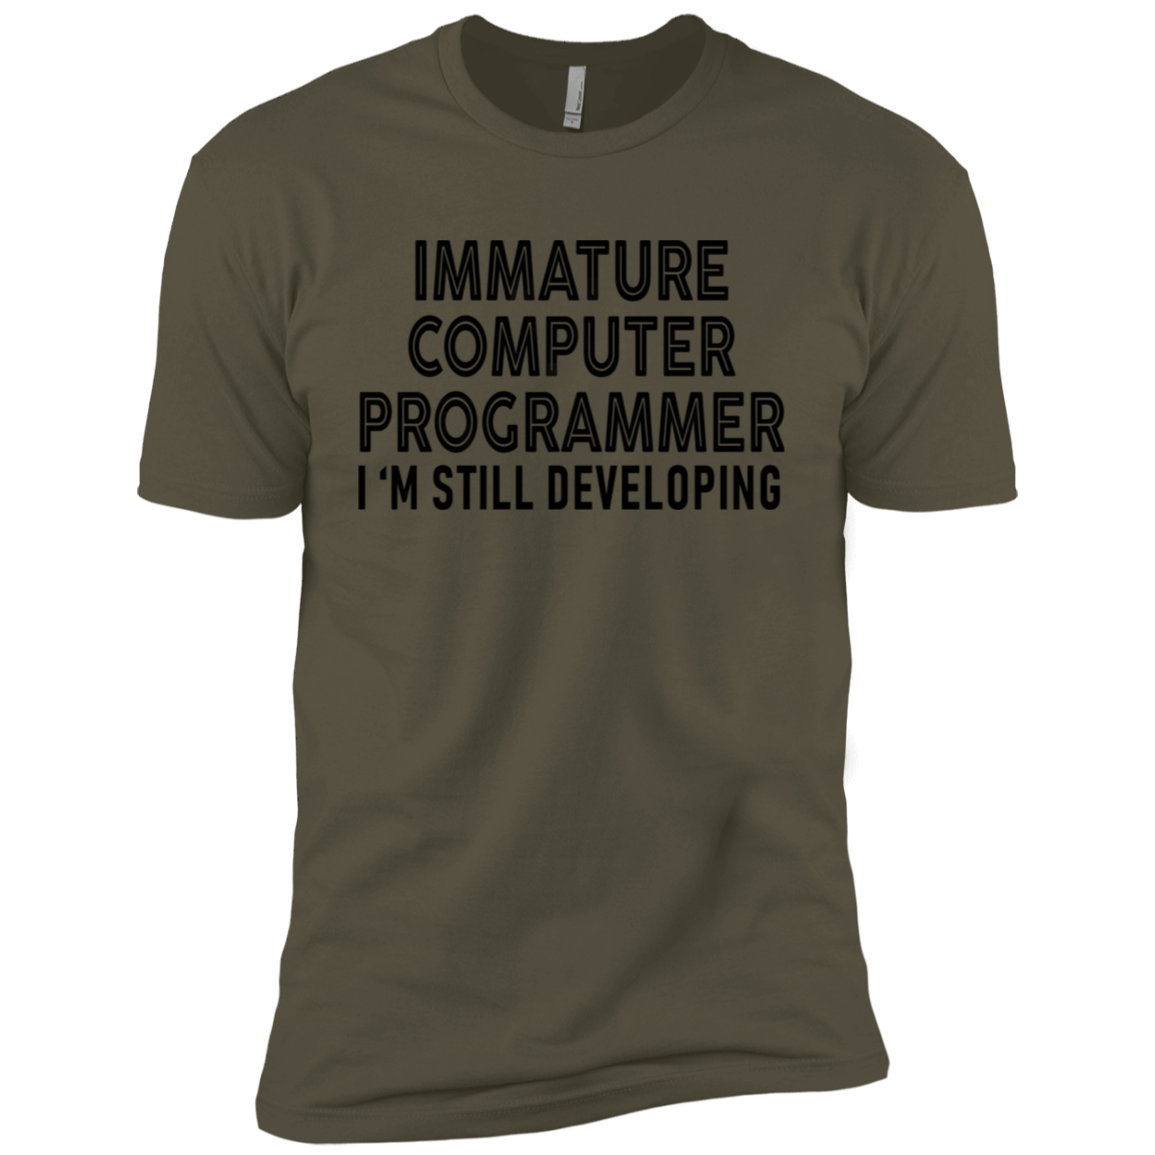 Immature Computer Programmer I'm Still Developing Men's Classic Tee